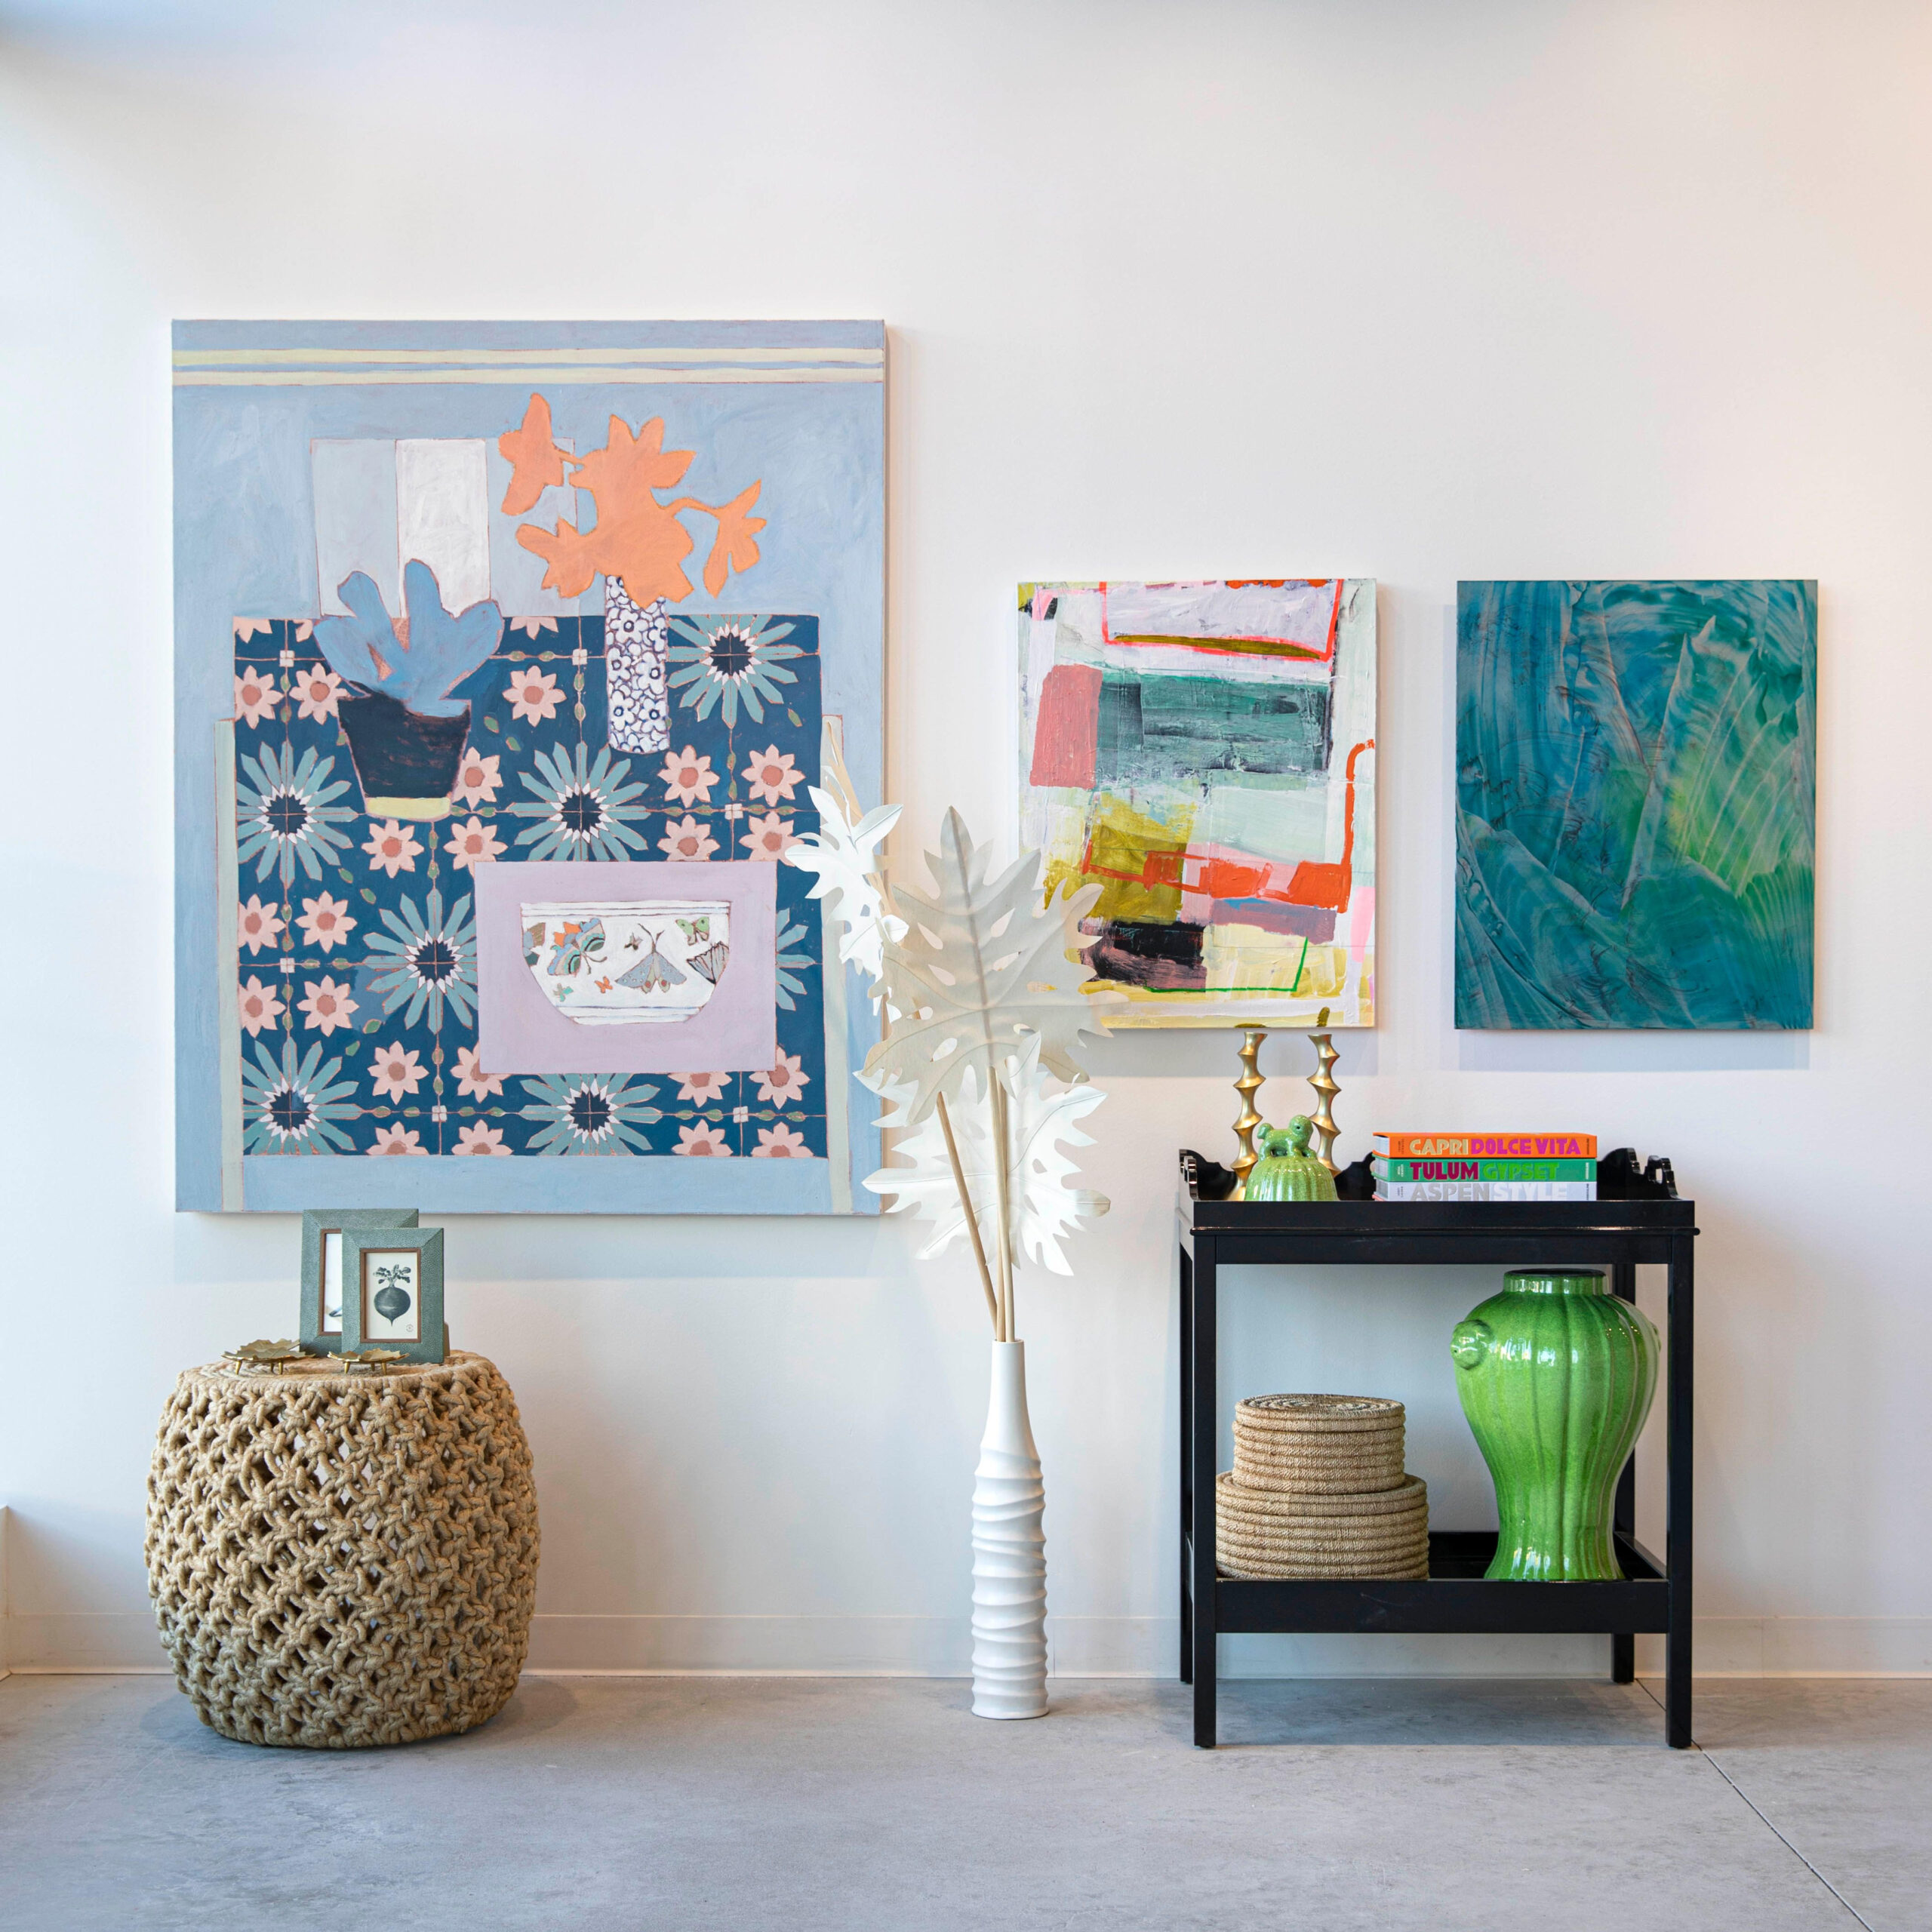 Framing + Caring For Your Art